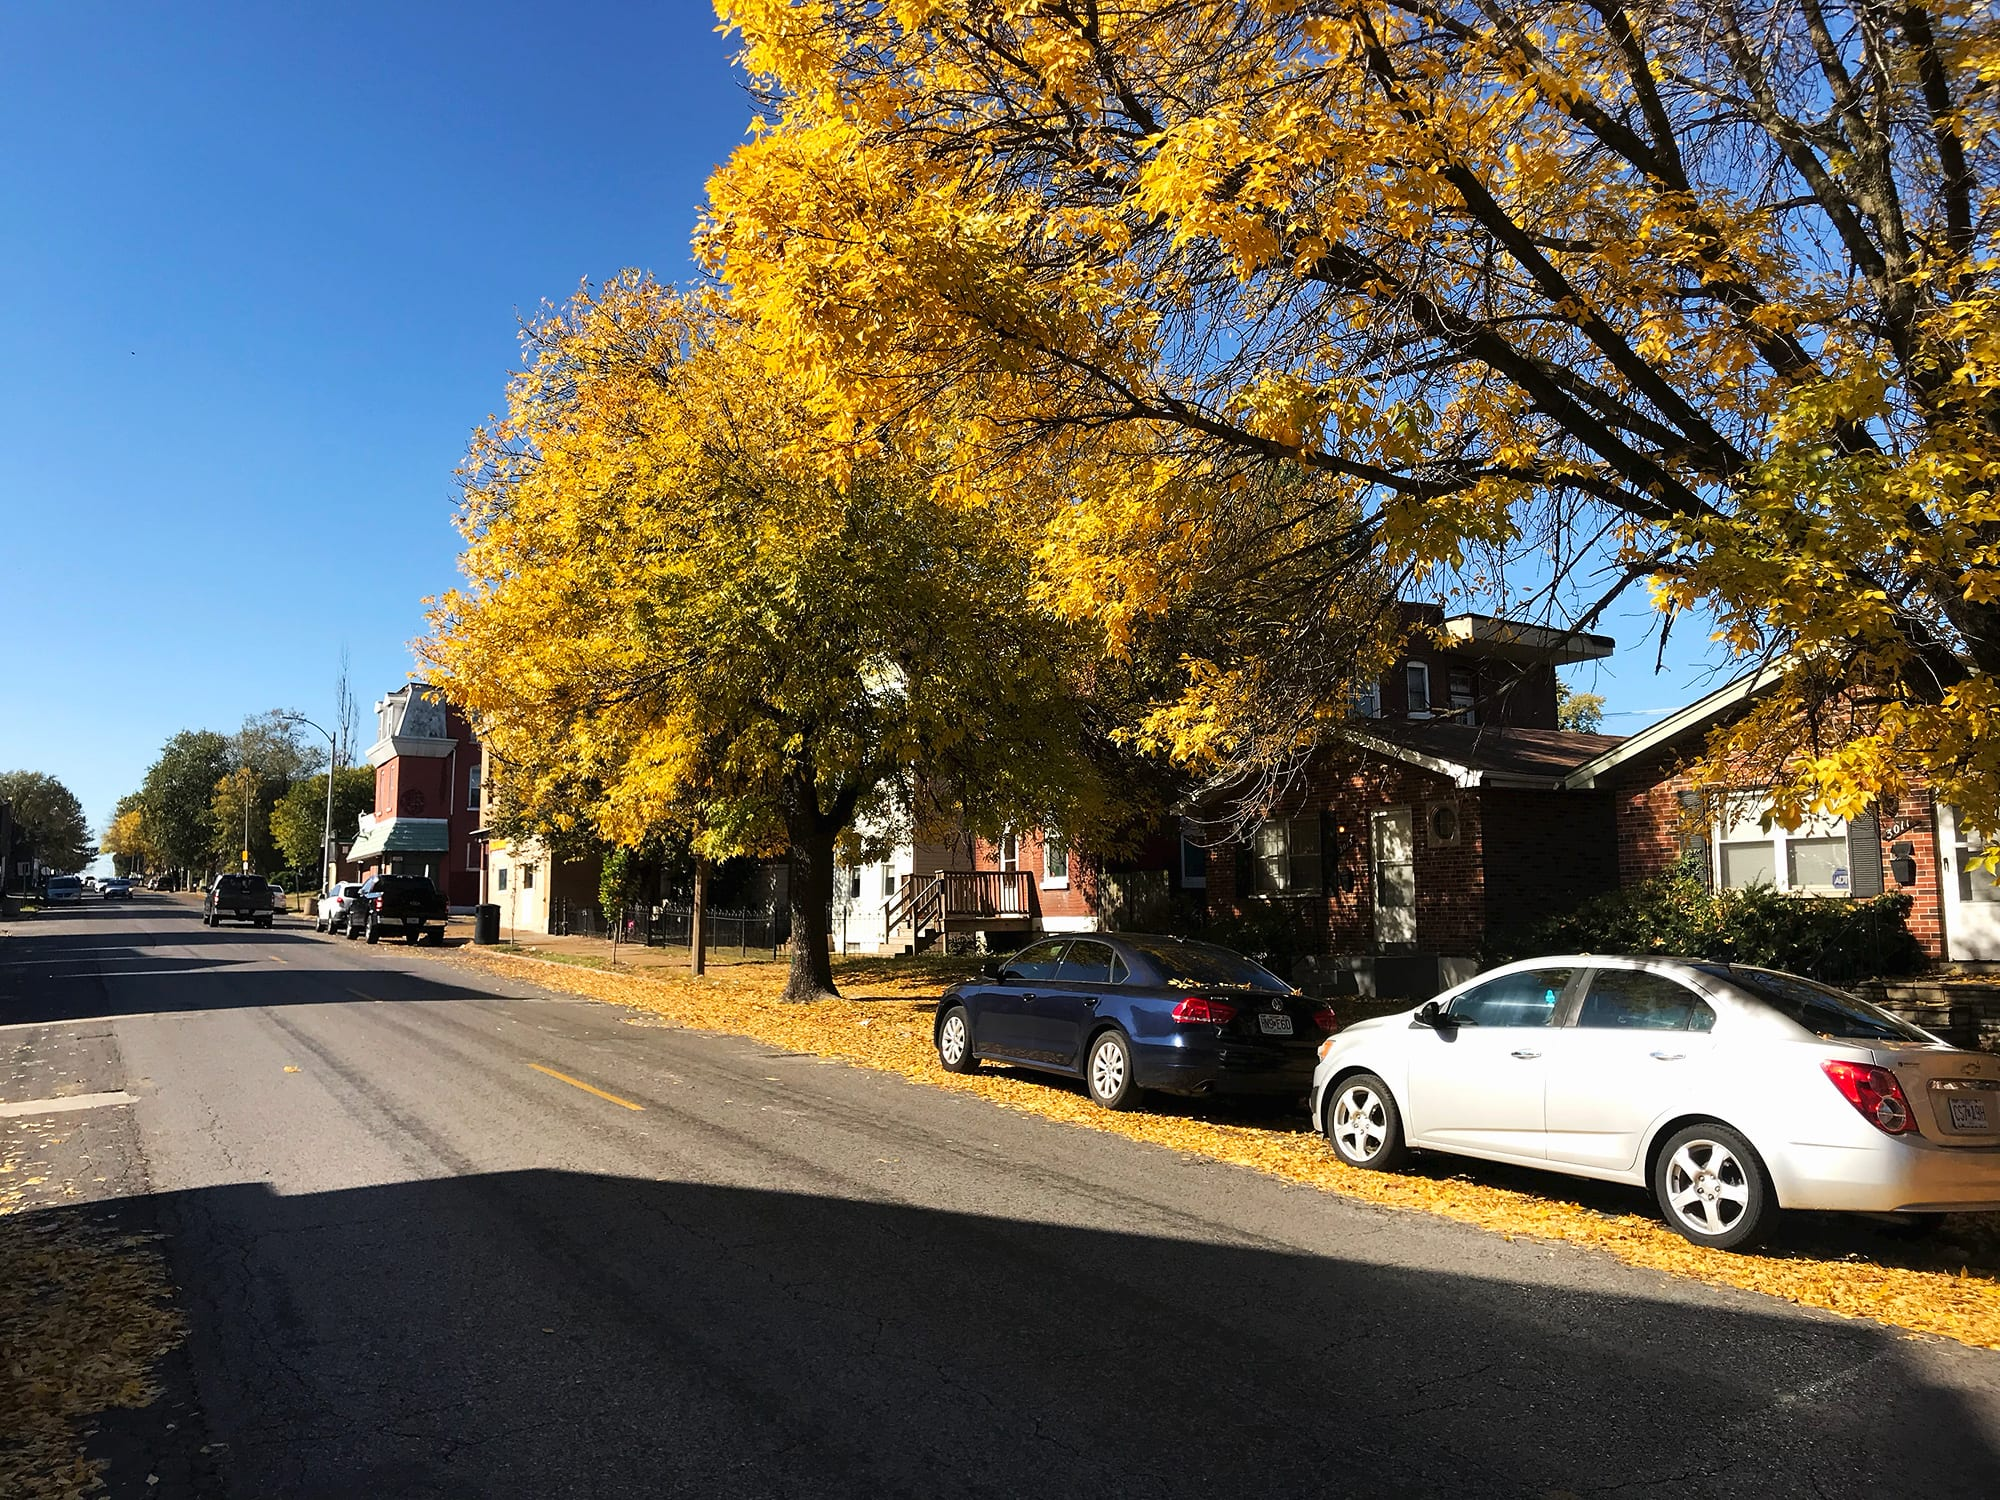 Fall foliage on Chippewa Street between Dutchtown and Gravois Park.